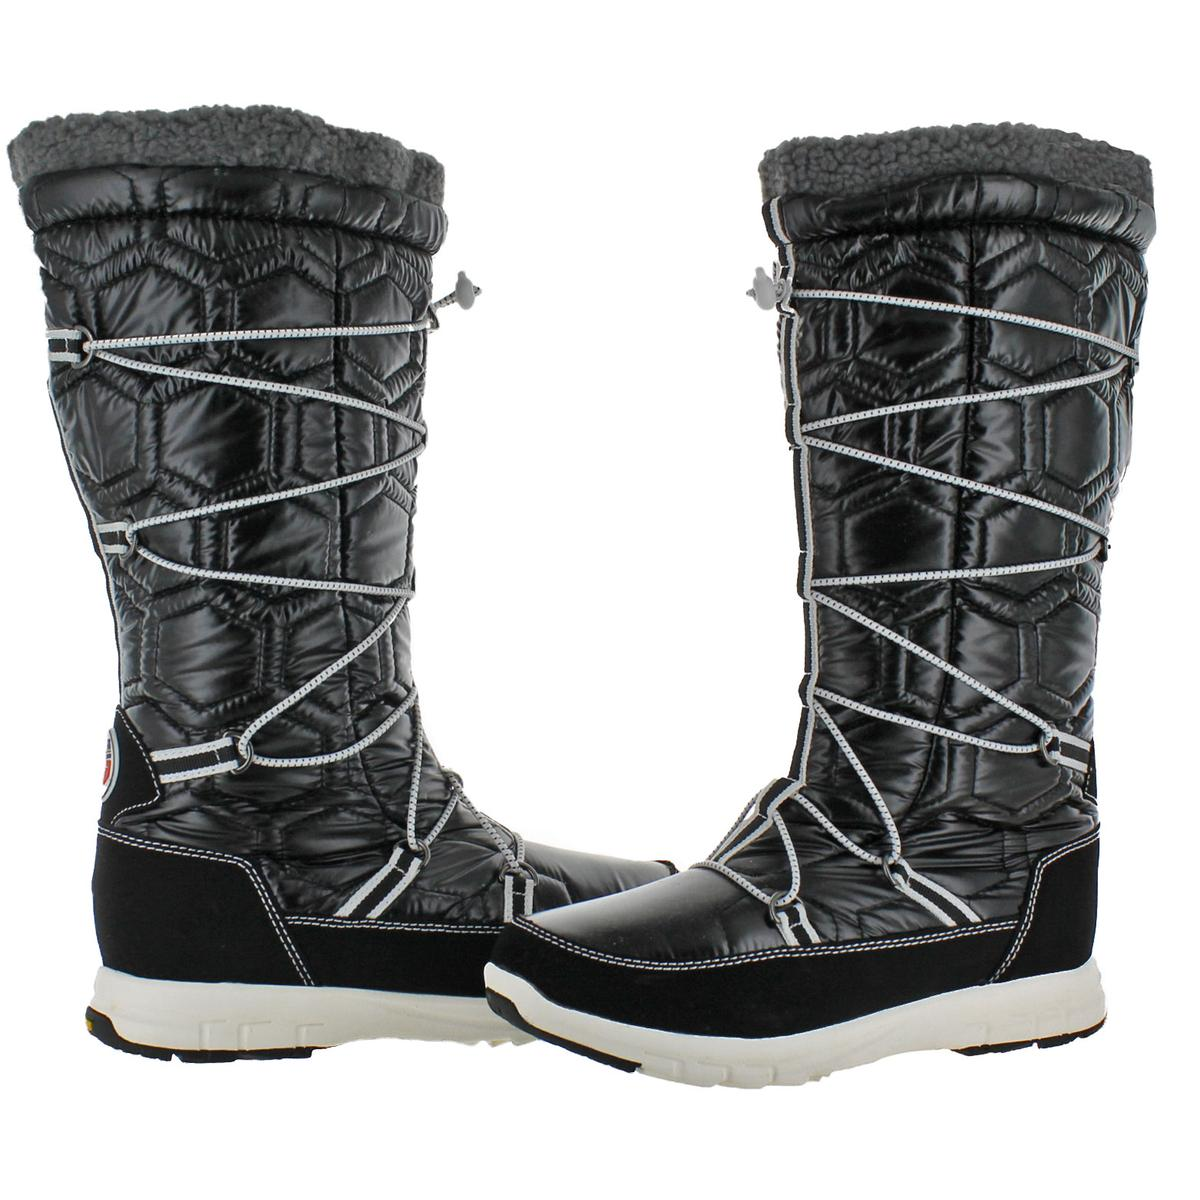 Khombu Women/'s Slalom Quilted Tall Waterproof Snow Winter Boots